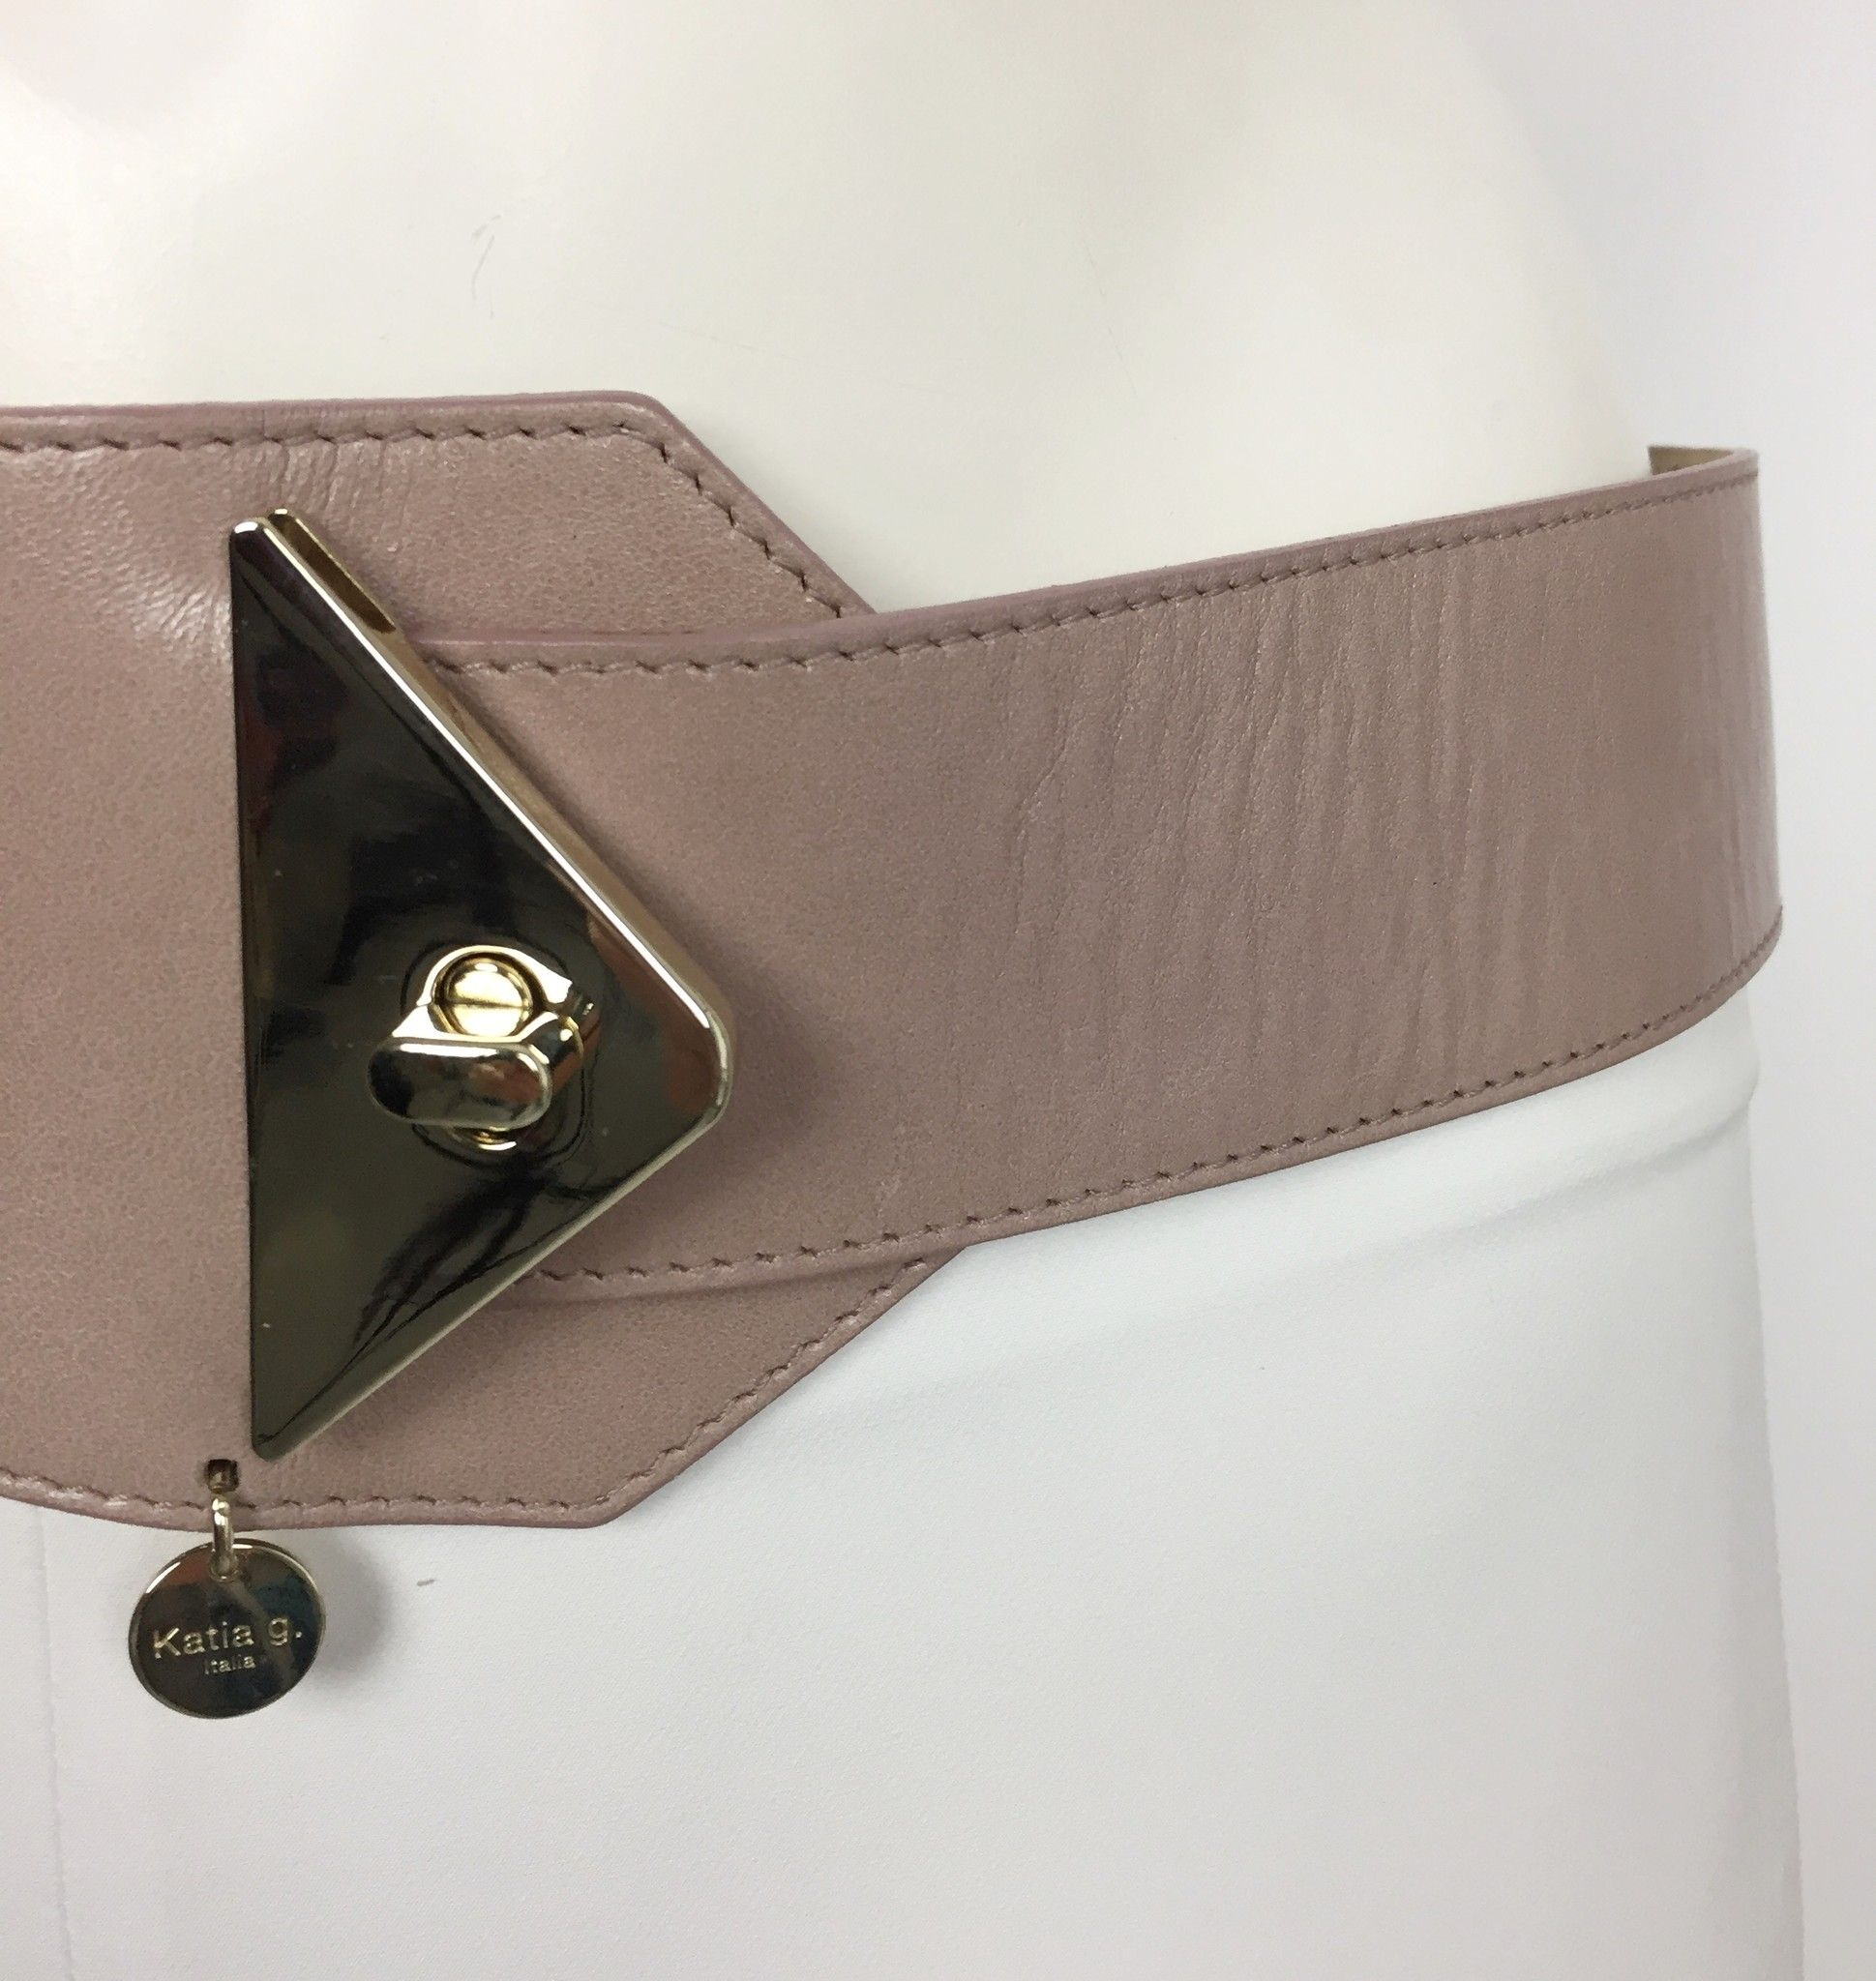 Katia G. Elastic Belt with Gold Buckle Cod.354862